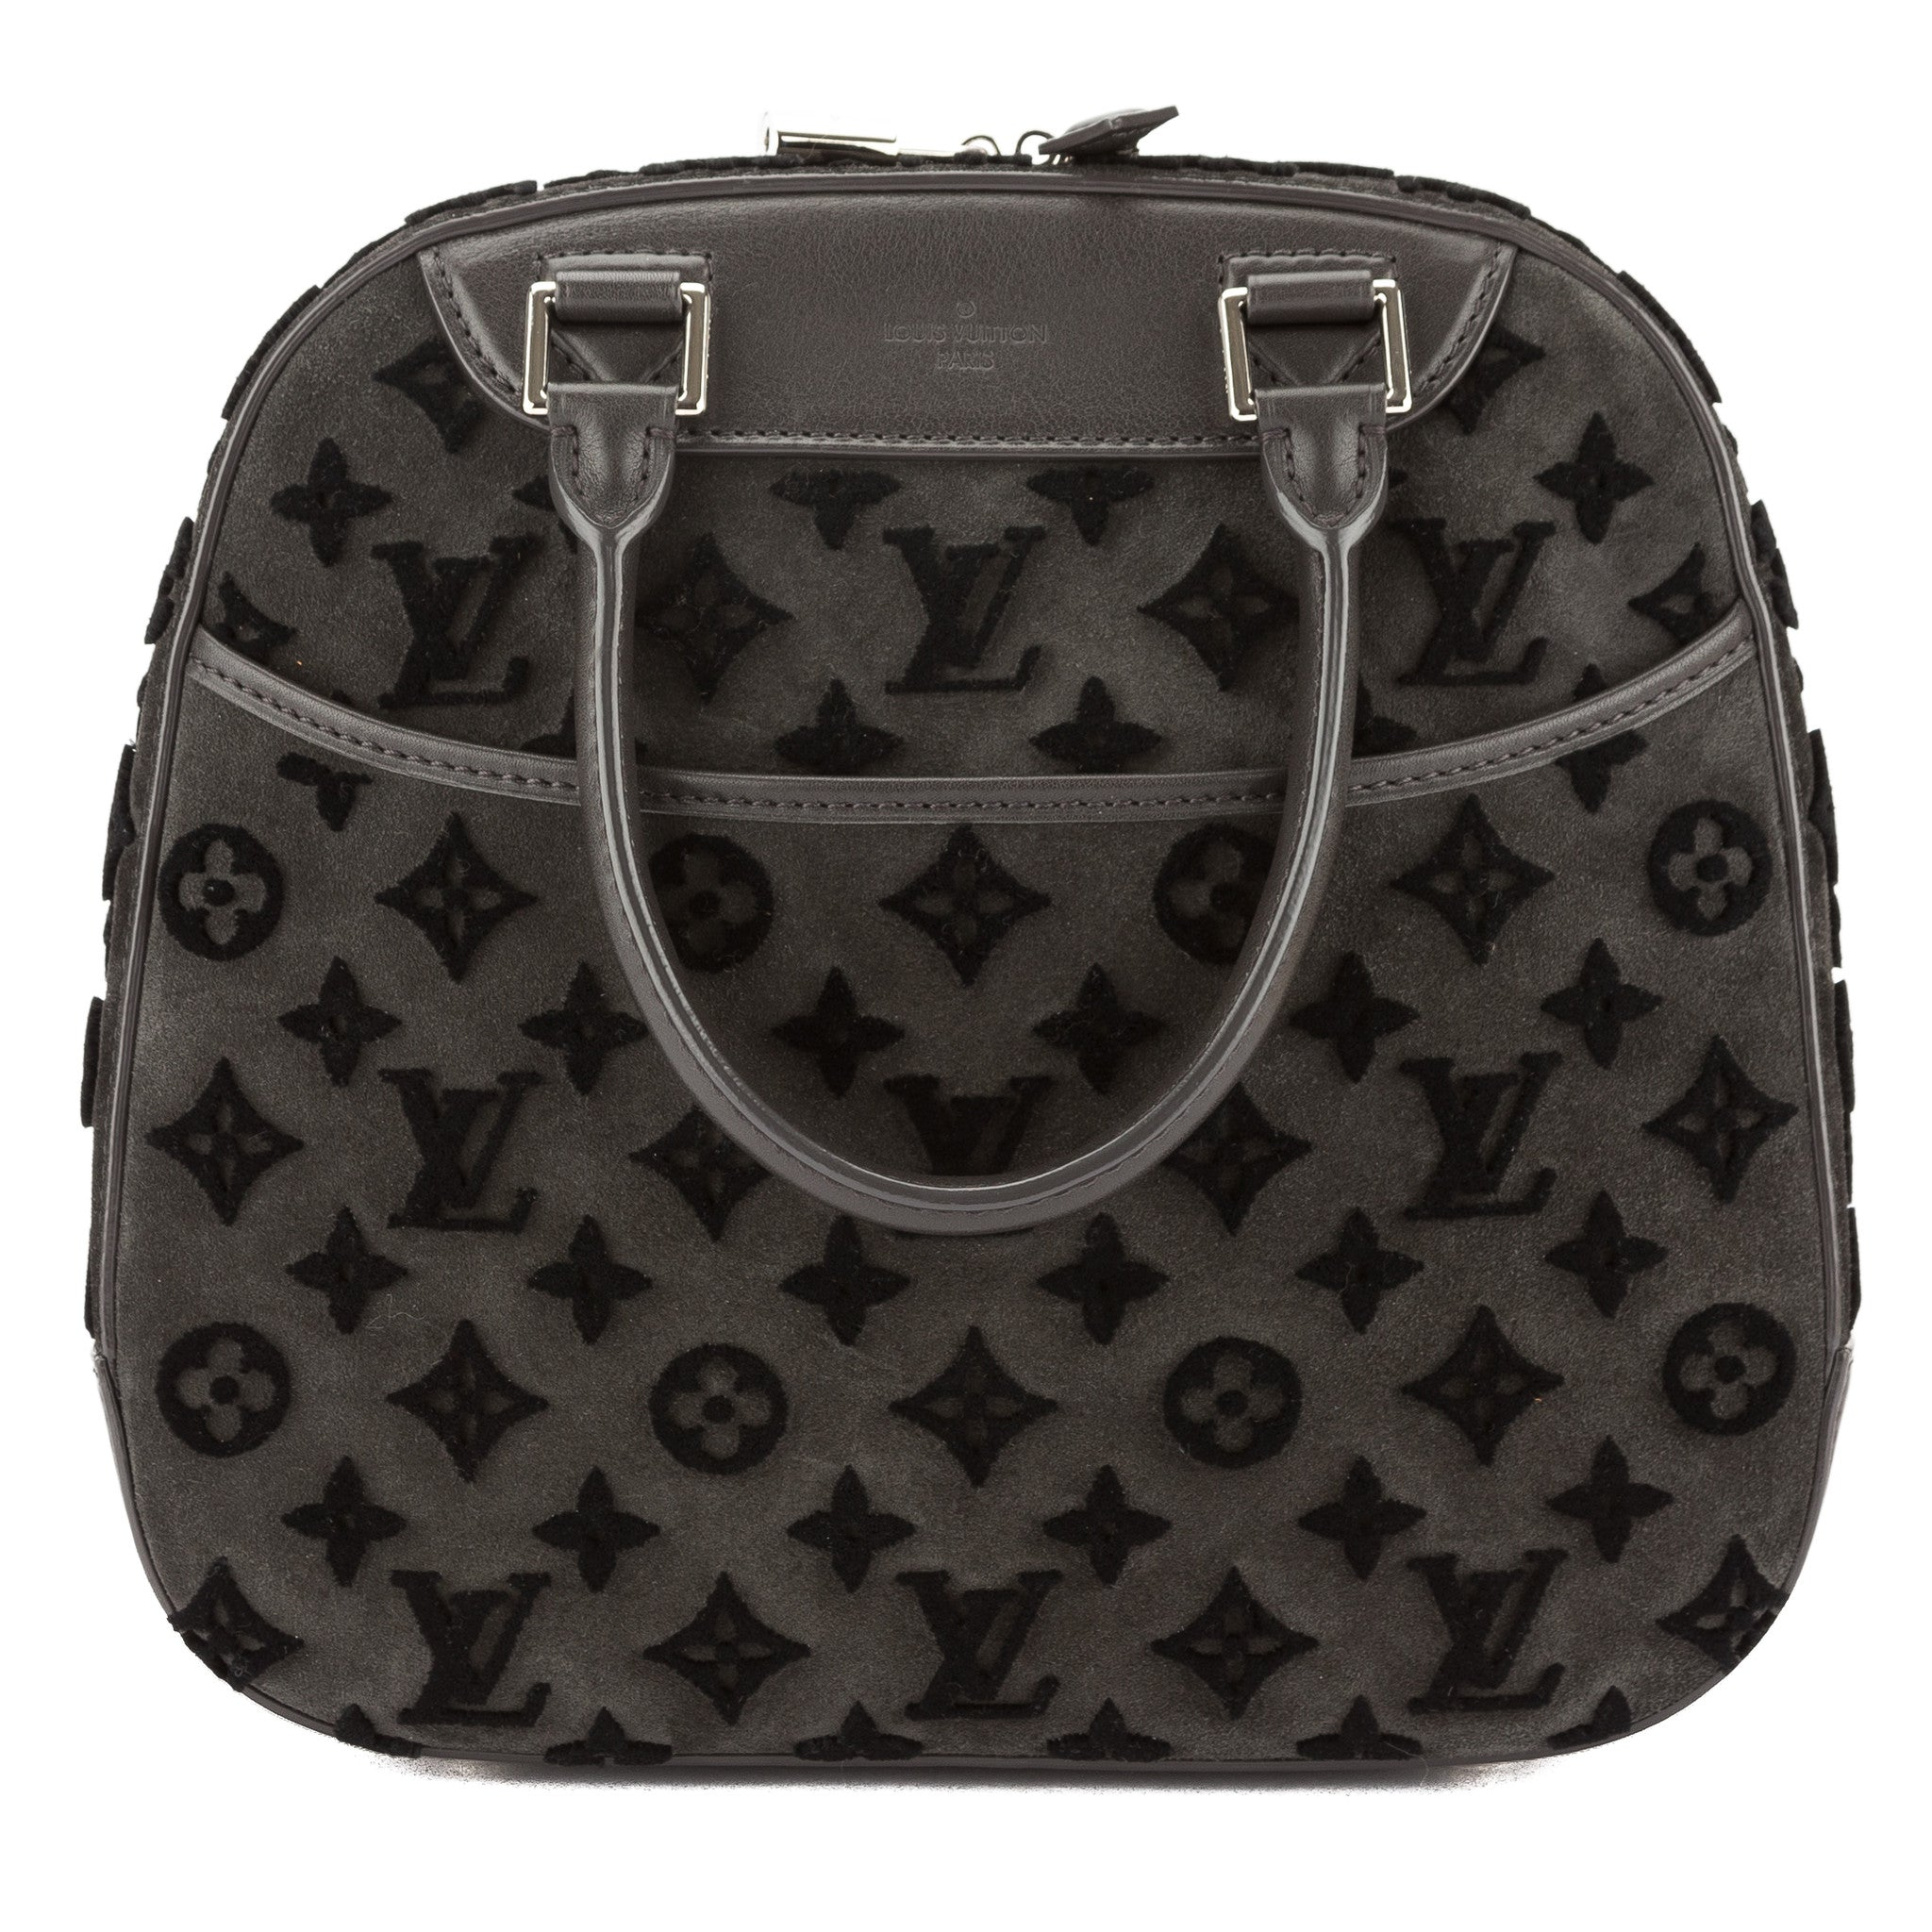 48bff987c7f3 Louis Vuitton Black Suede Monogram Tuffetage Deauville Cube Bag Pre Owned